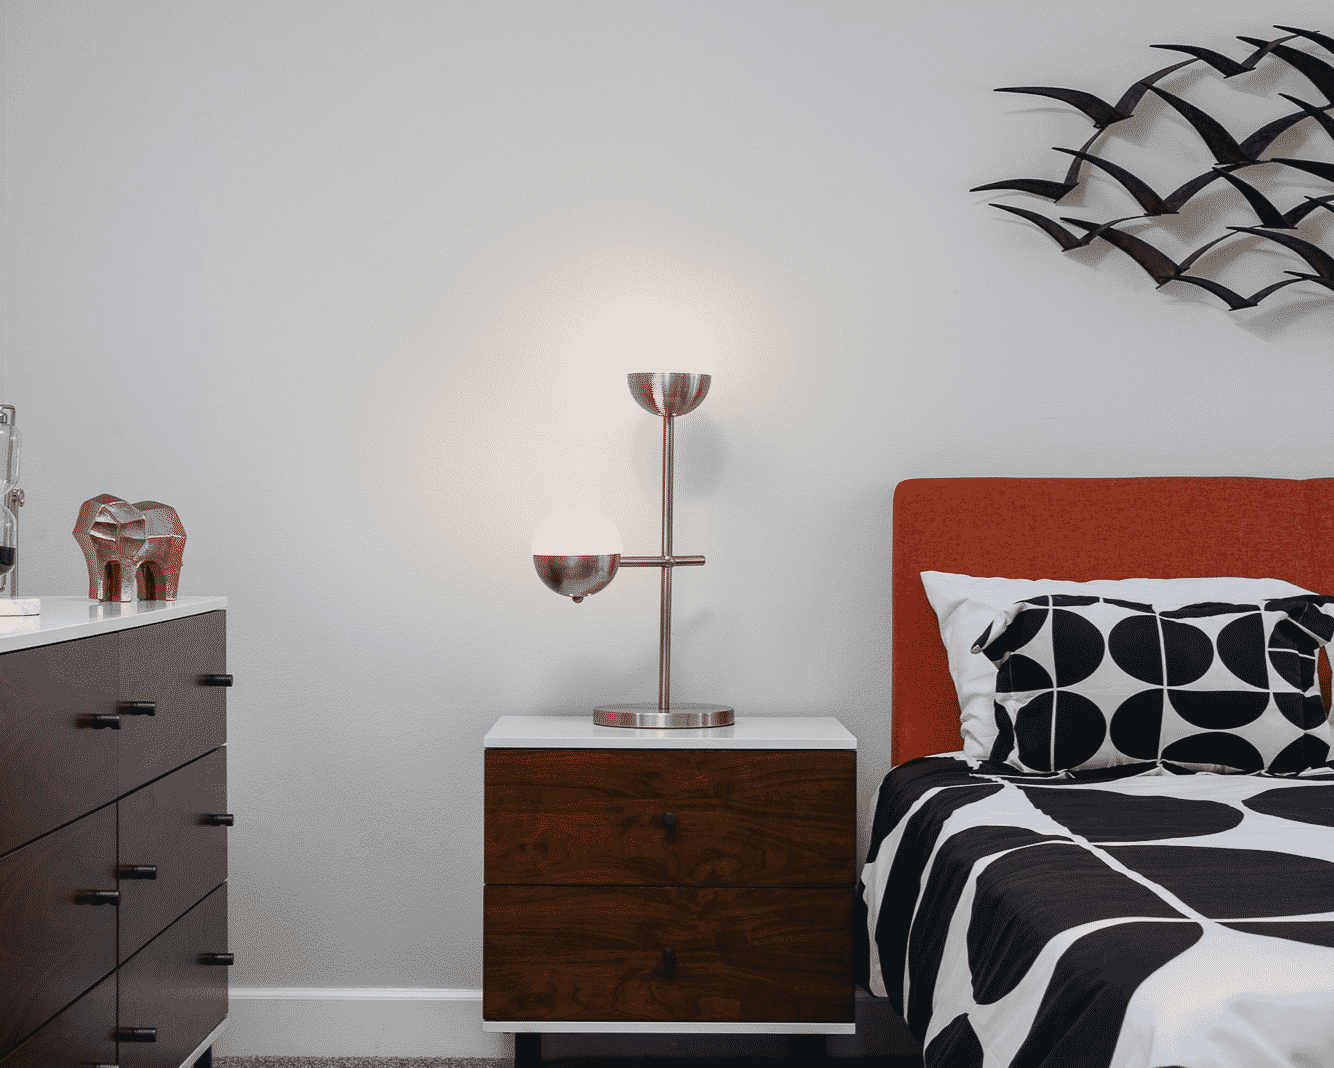 Bedside table with lamp in between cabinet with gold elephant sculpture on top and a bed with orange head board, black and white bedding, and a bird art sculpture above